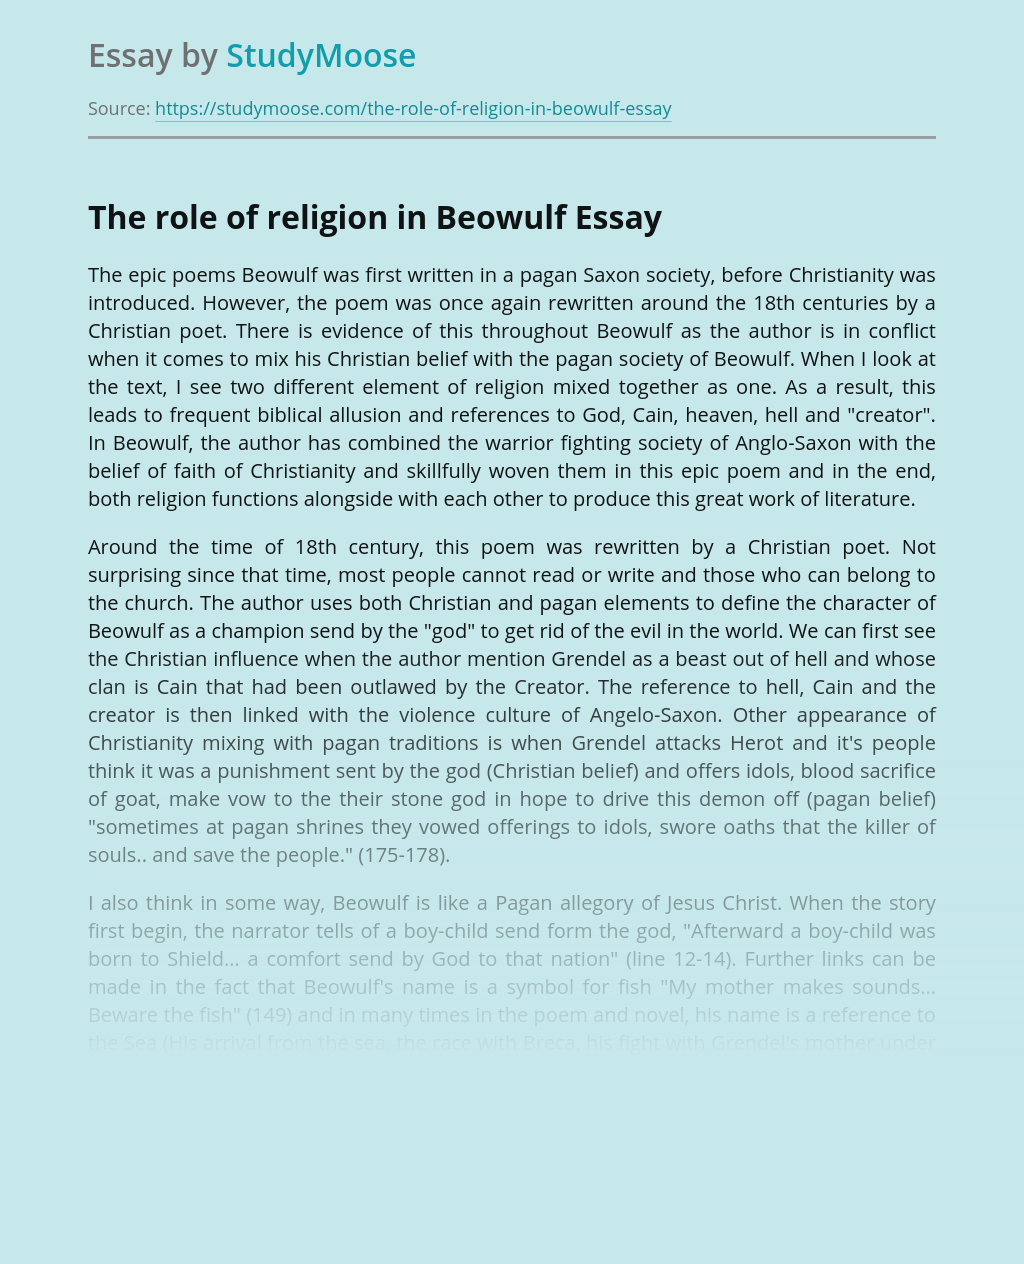 The role of religion in Beowulf